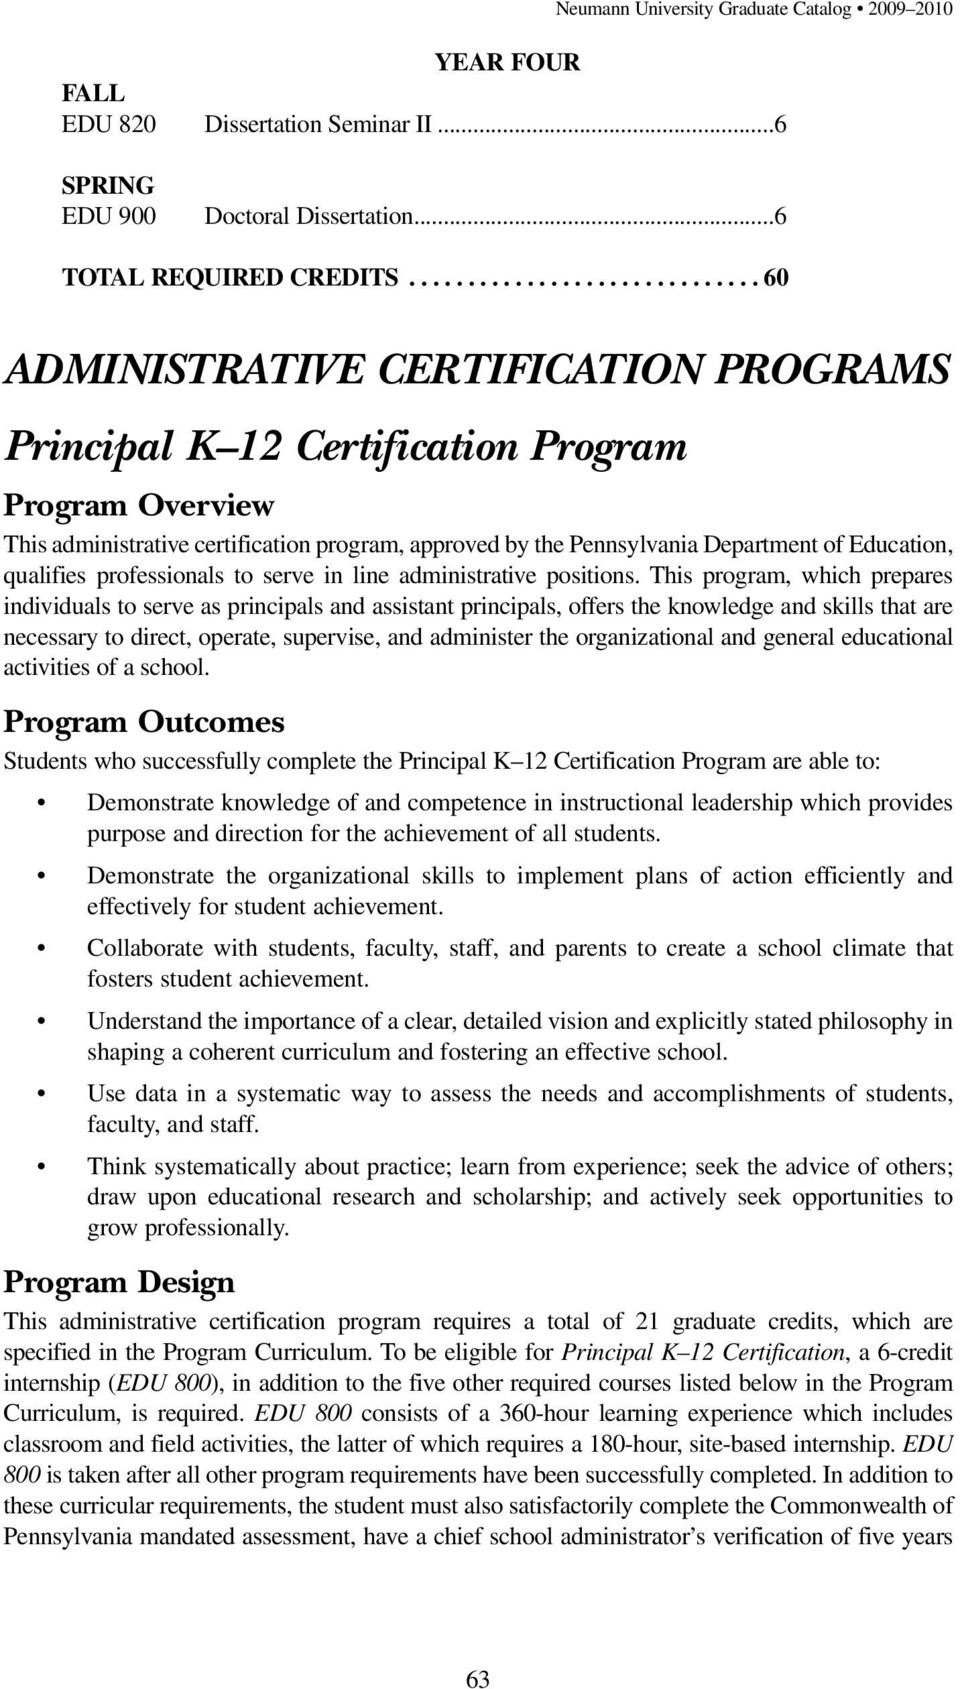 Department of Education, qualifies professionals to serve in line administrative positions.